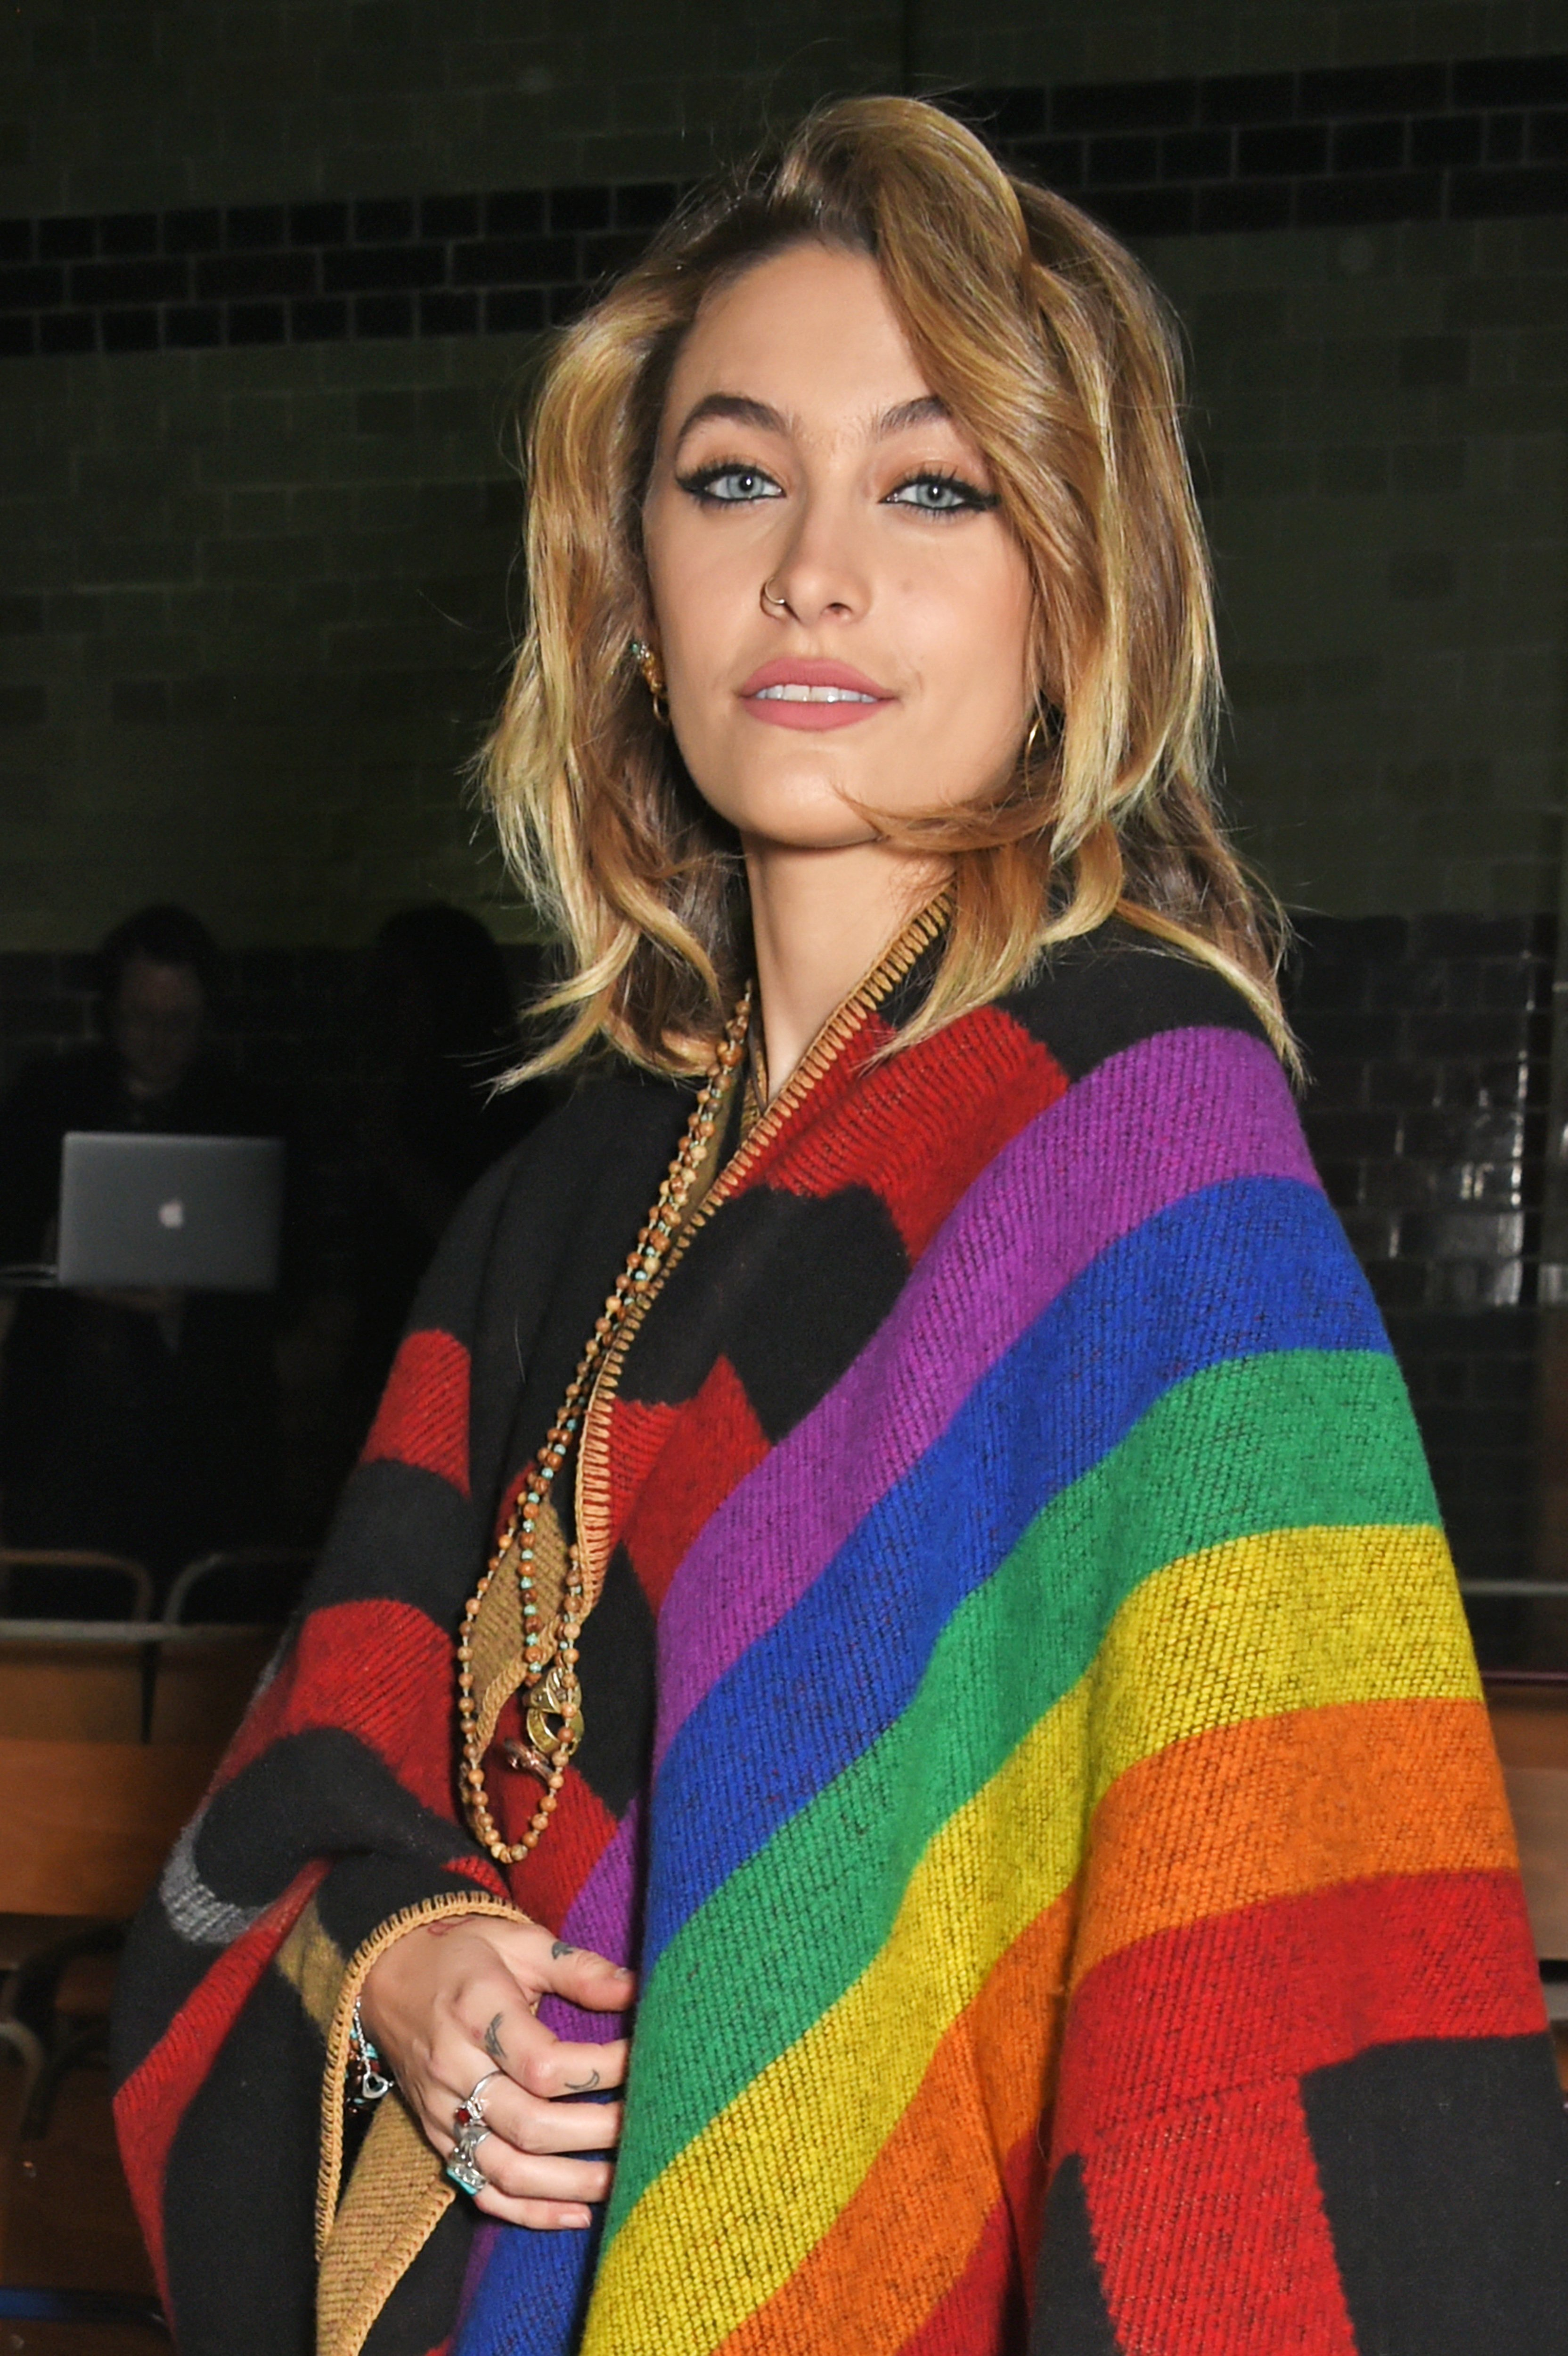 Paris Jackson wearing Burberry at the Burberry February 2018 show during London Fashion Week at Dimco Buildings on February 17, 2018, in London, England.   Source: Getty Images.